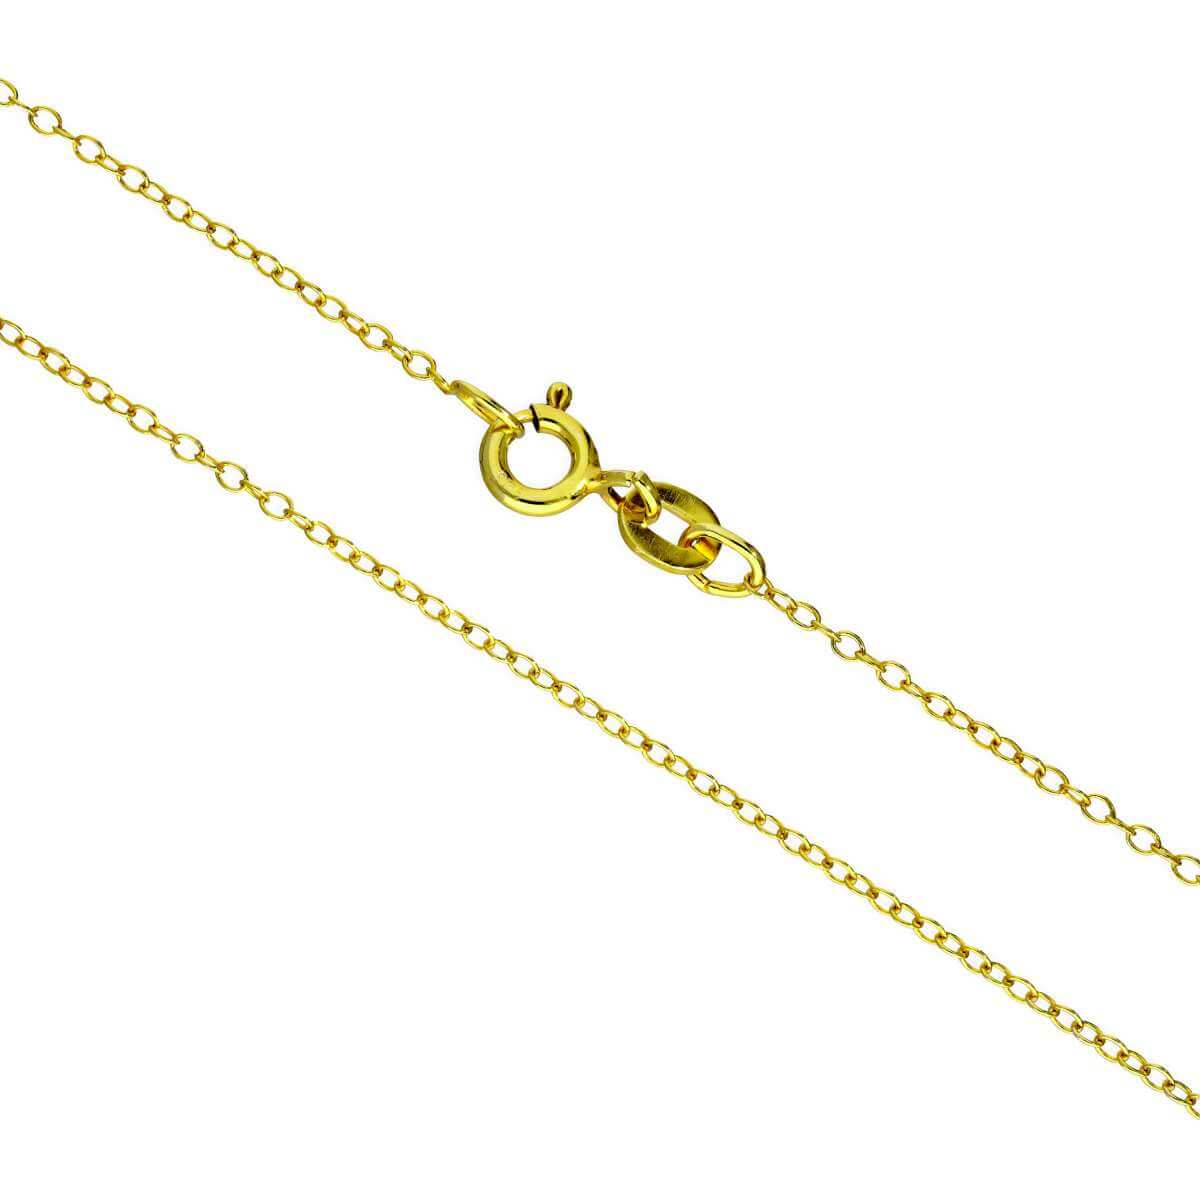 Gold Plated Sterling Silver Fine Belcher Chain Necklace 16 - 22 Inches